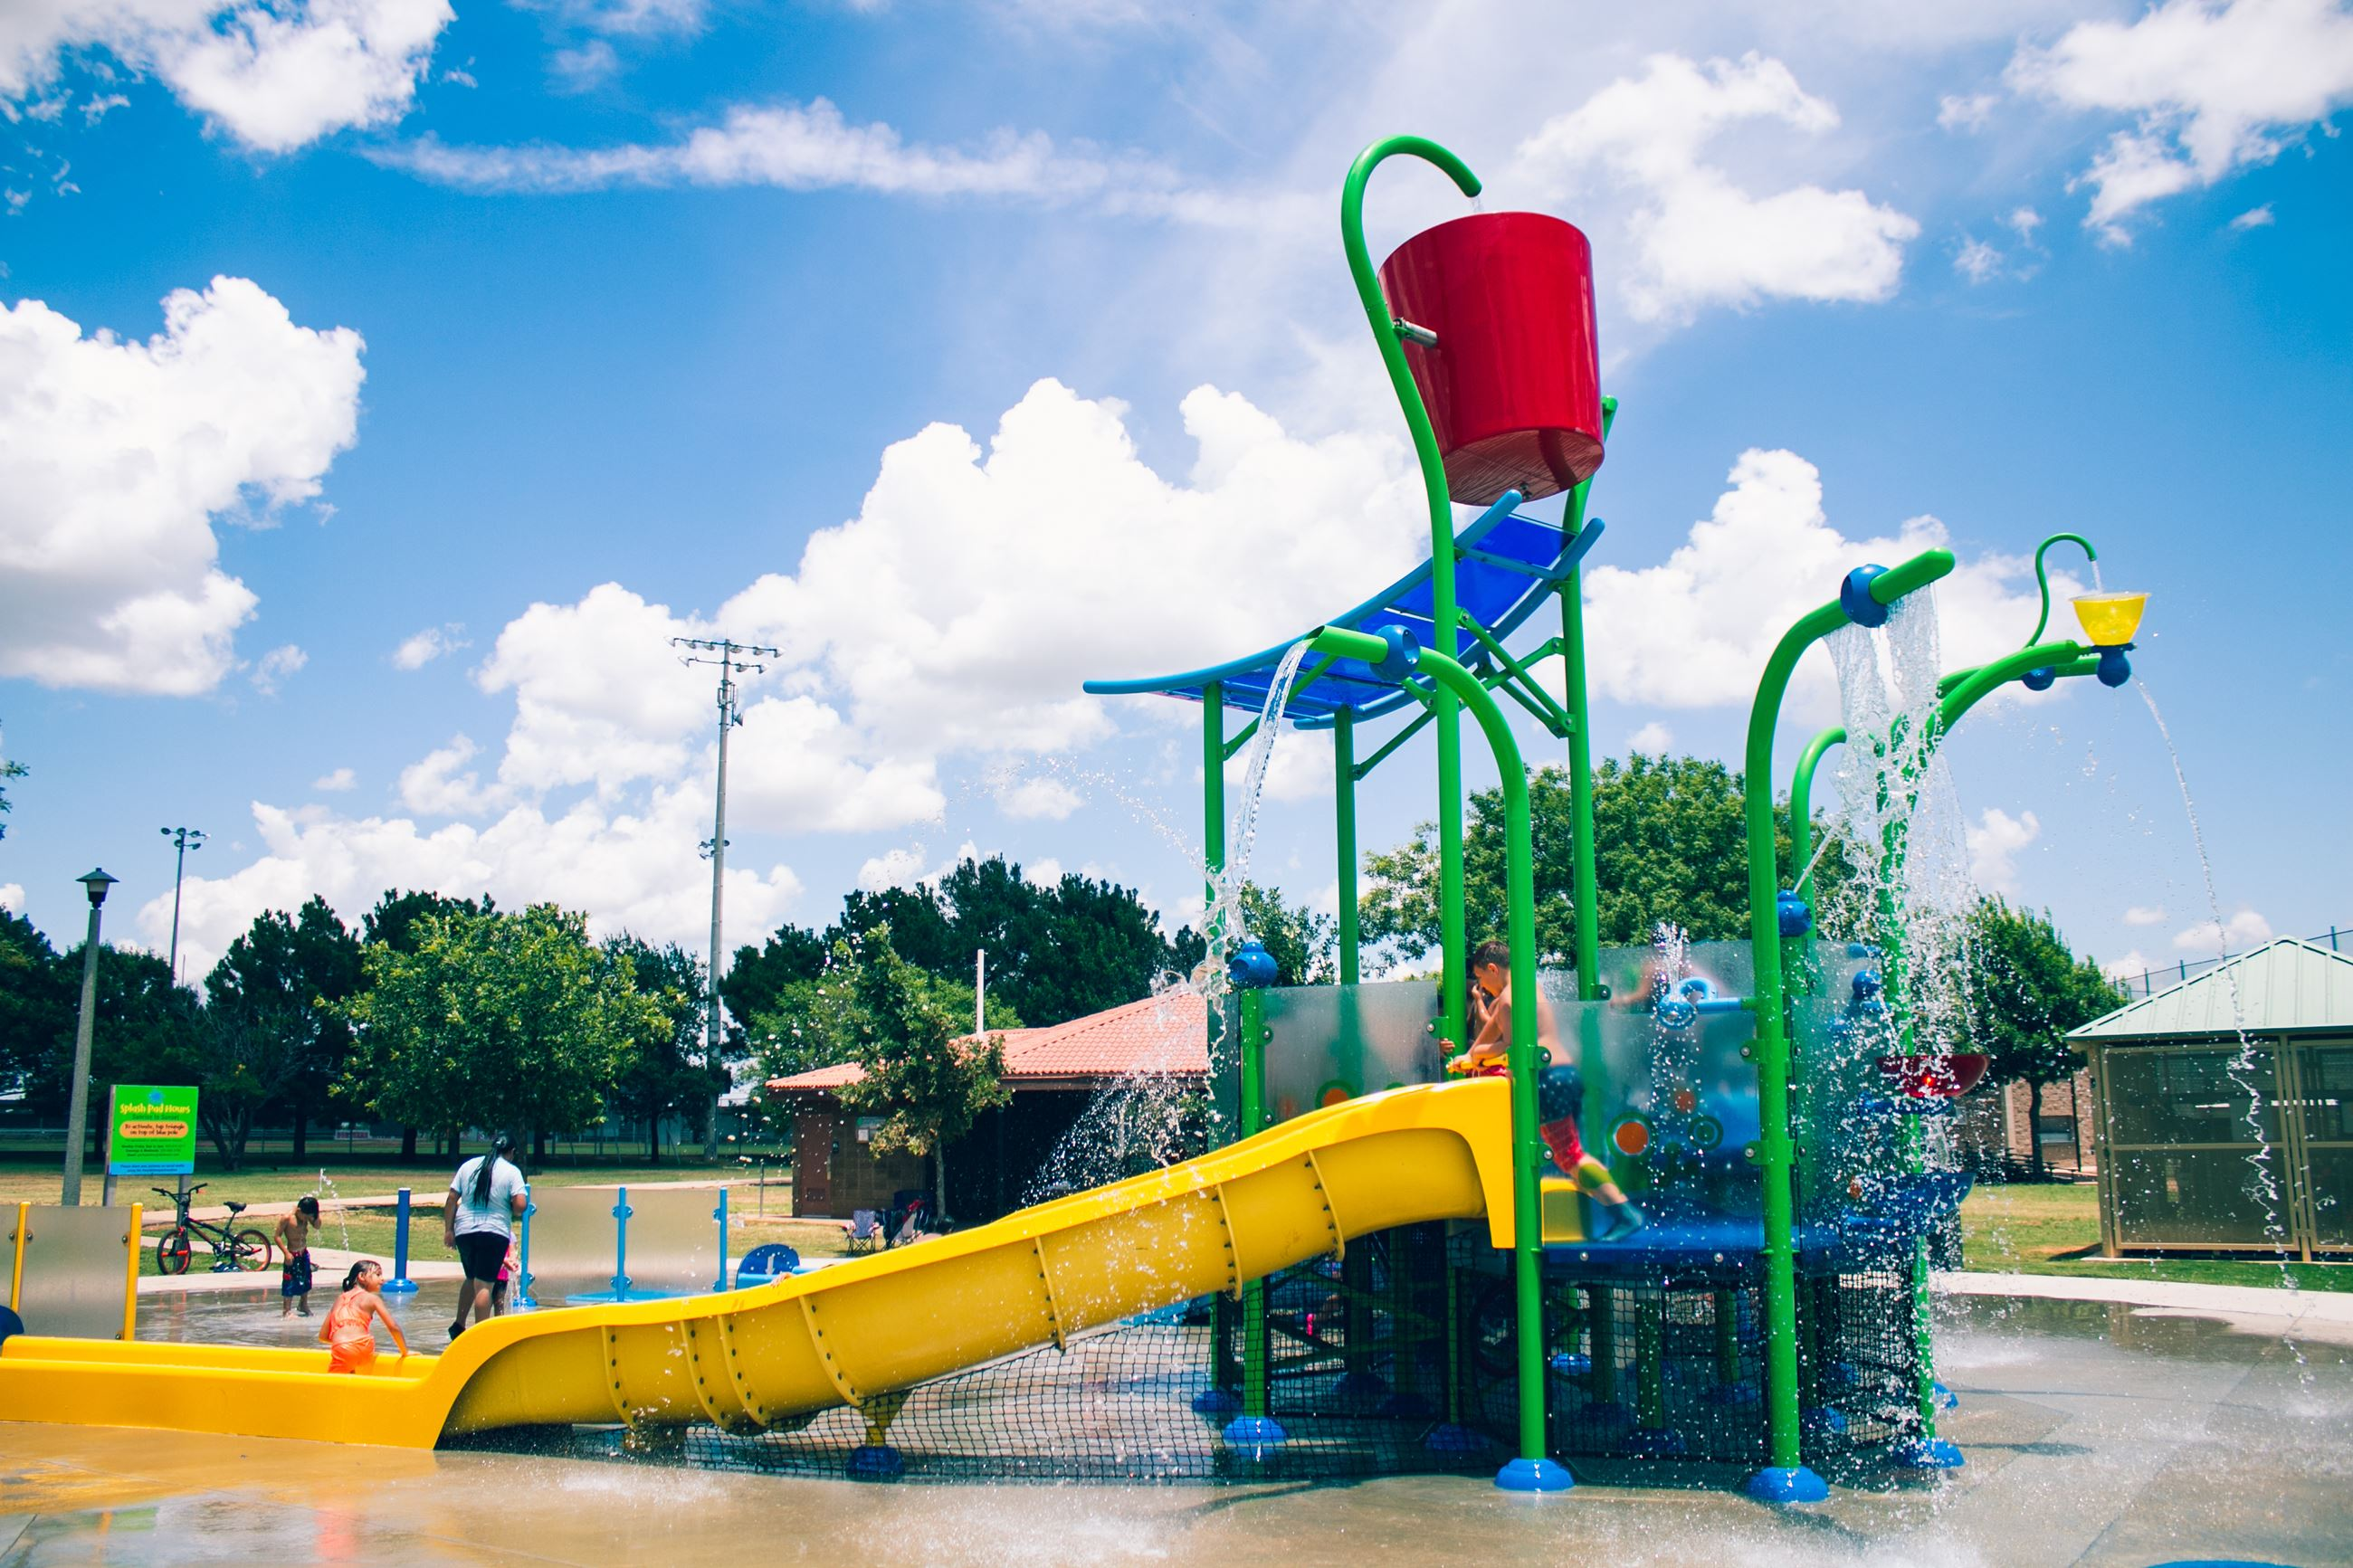 Arthur Sears Splash Pad in Abilene Texas